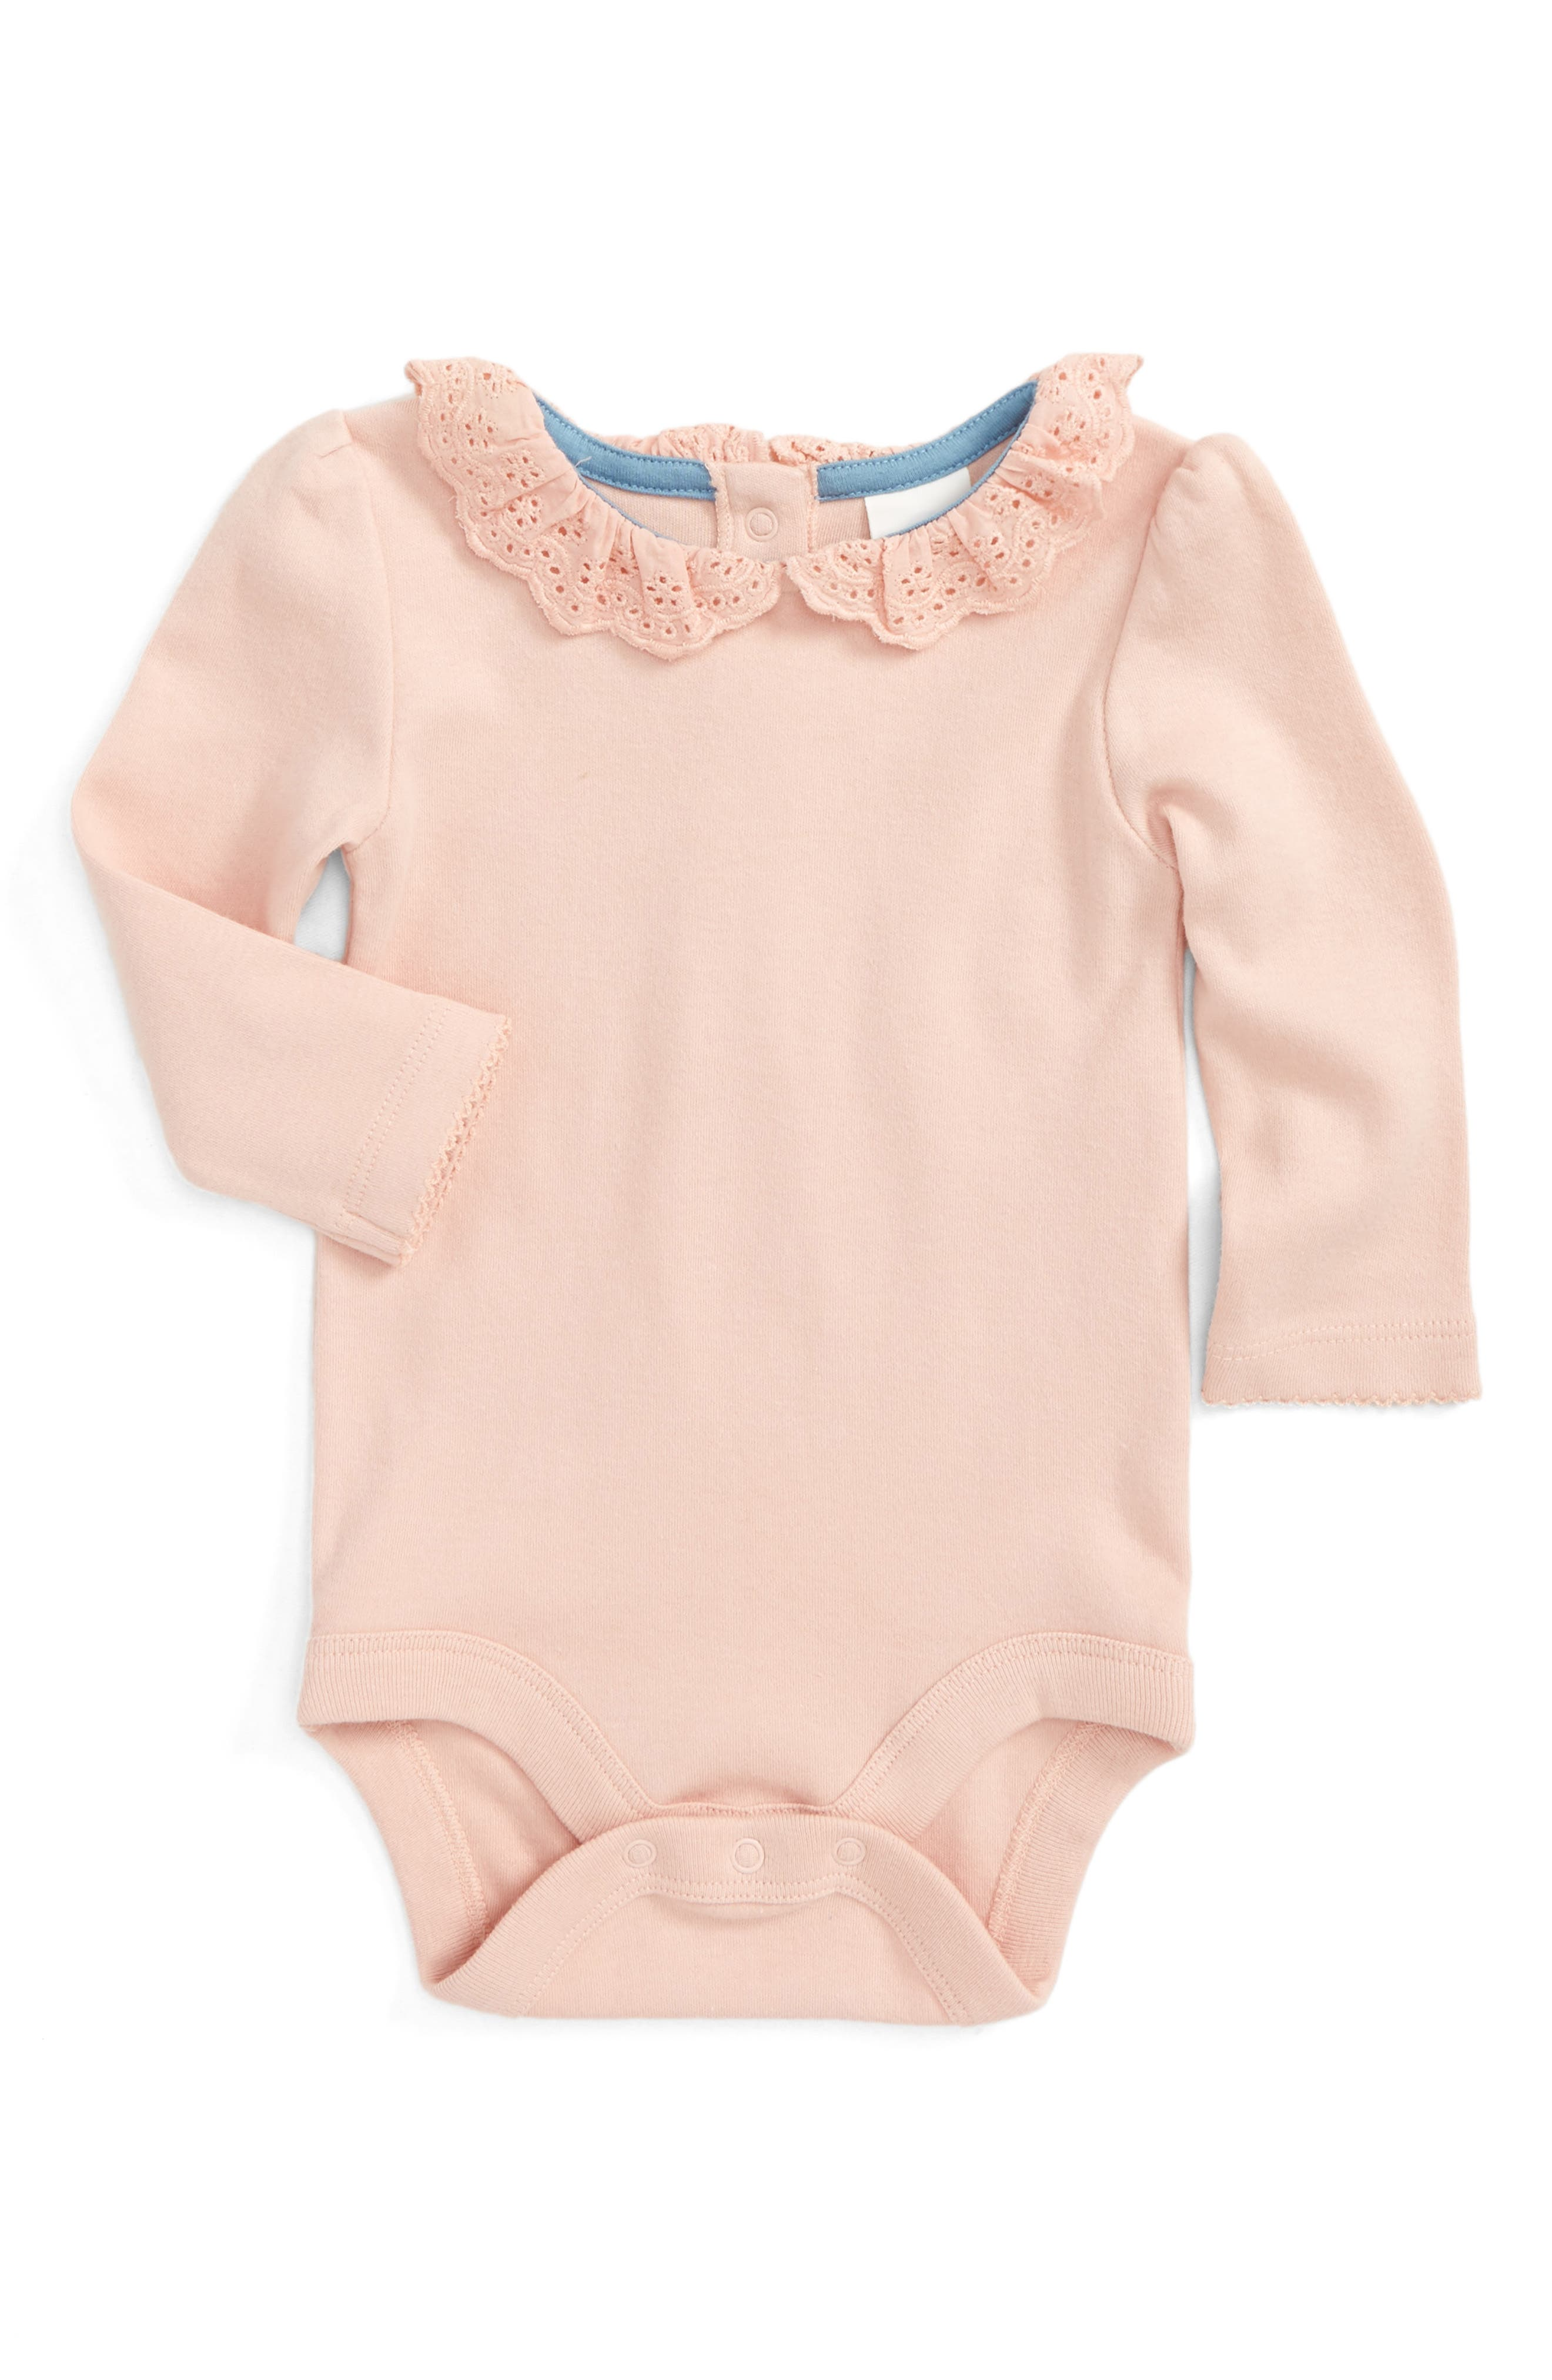 Main Image - Mini Boden Pretty Collar Bodysuit (Baby)